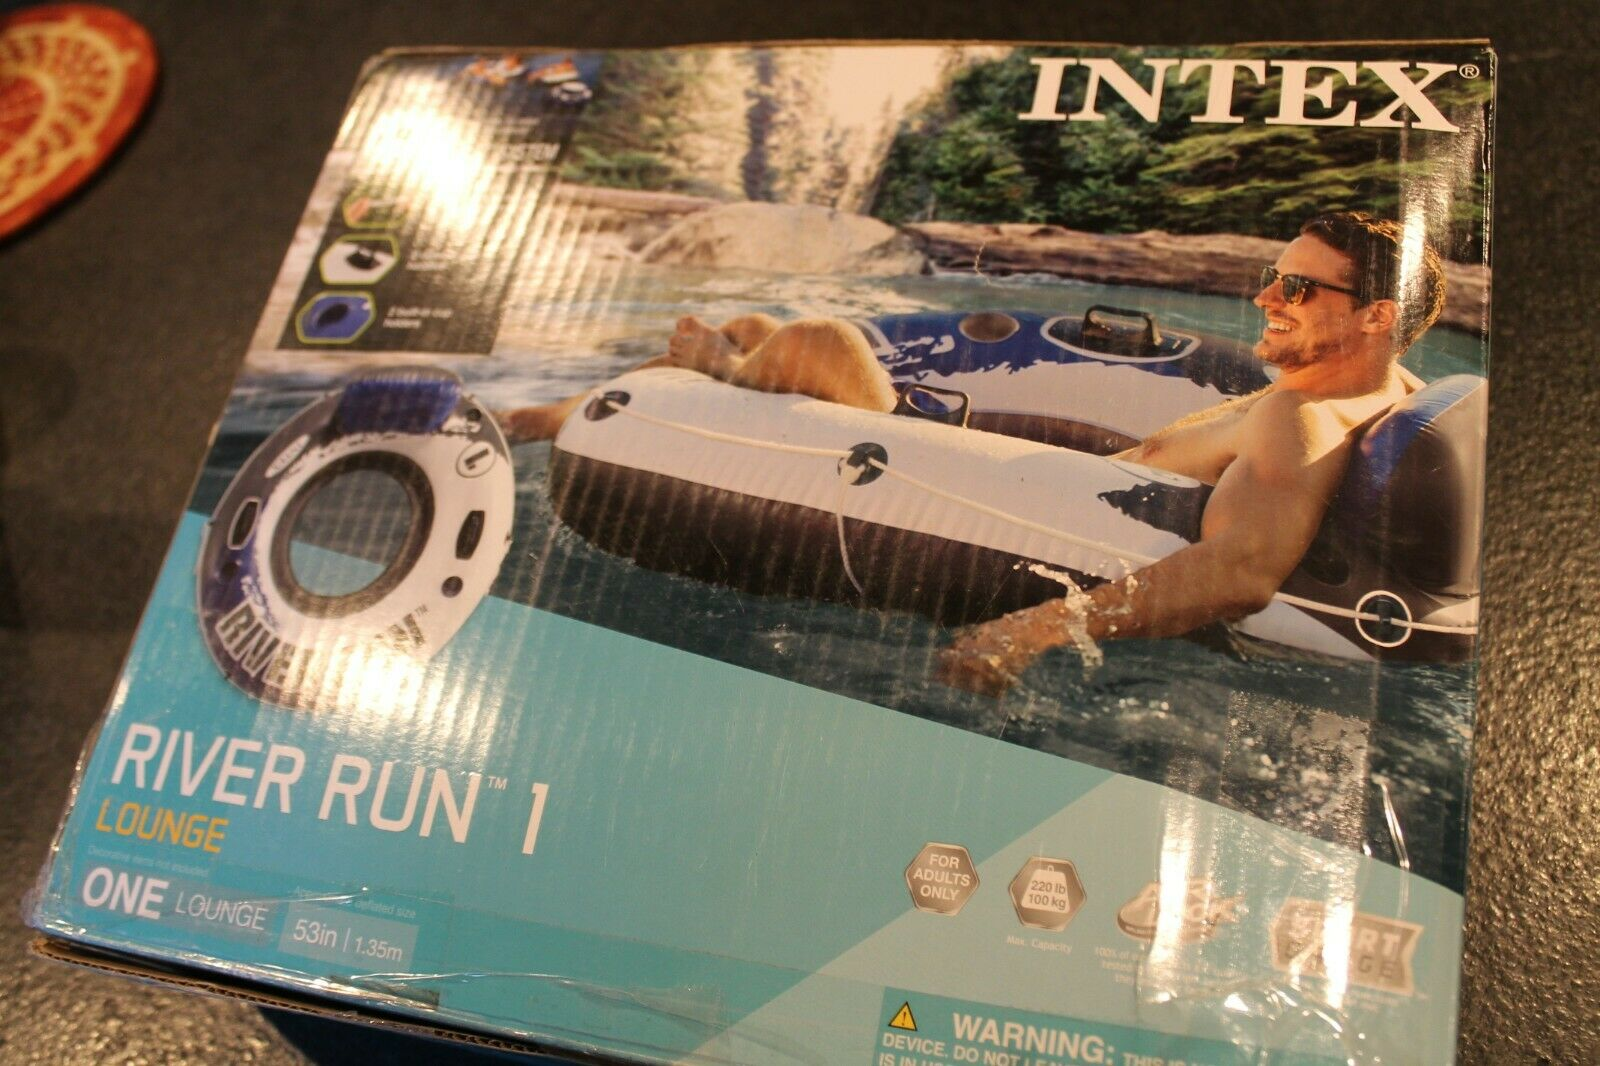 Intex River Run I Sport Lounge, Inflatable Water Float, 53""